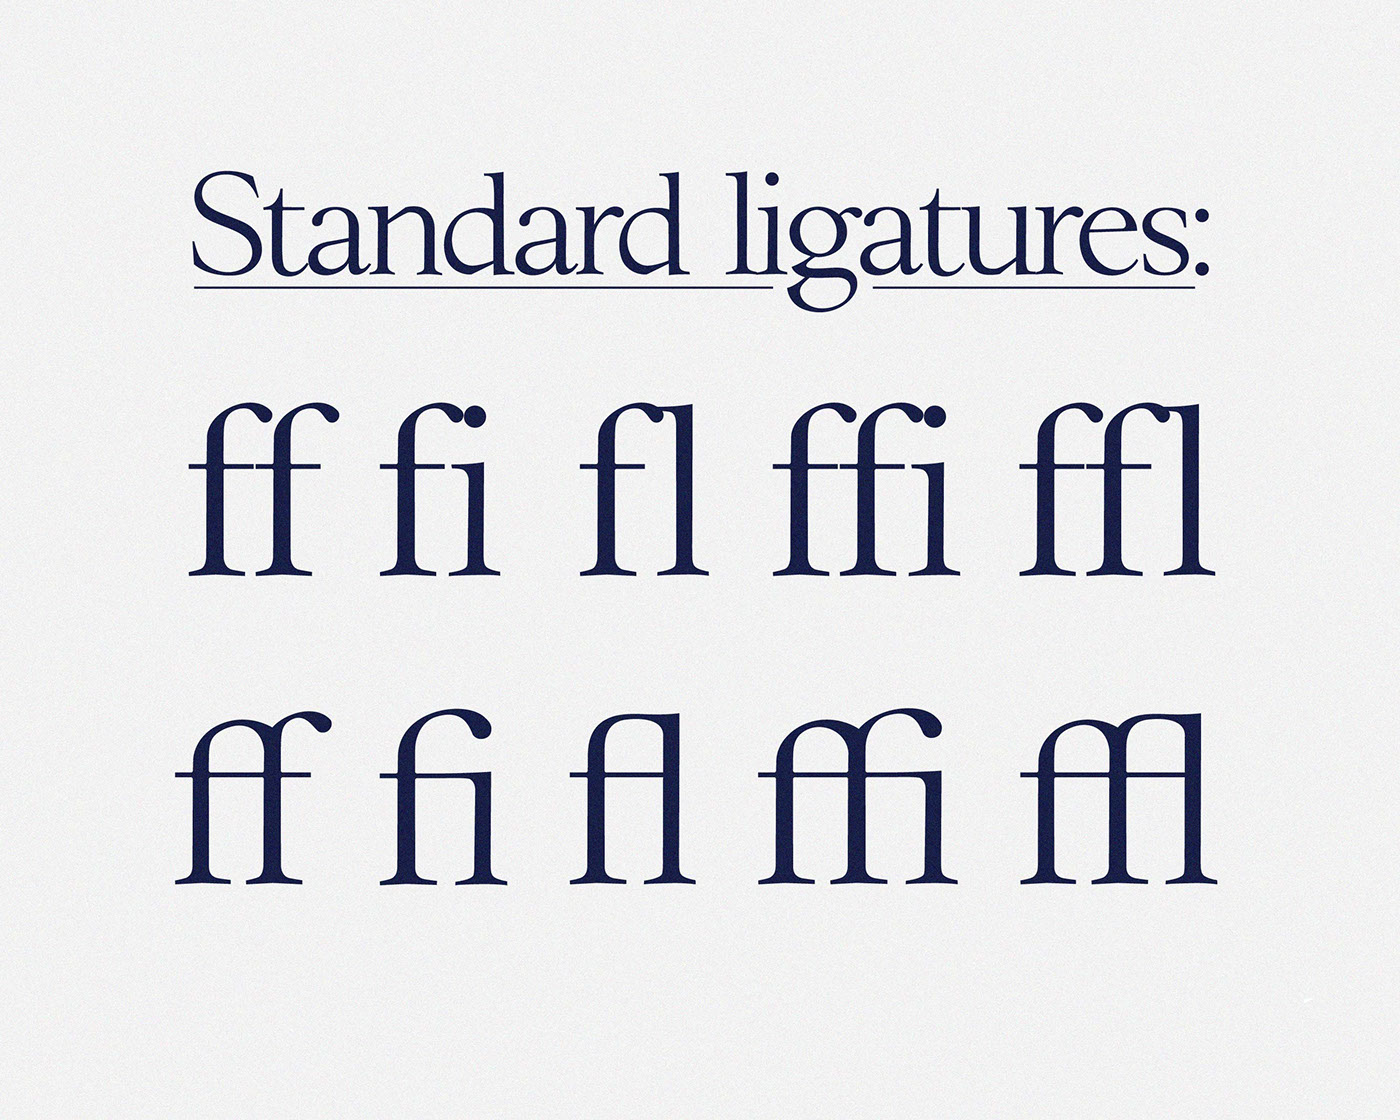 free typeface Serif Font old style font Williwaw Garamond Bembo design resources stephen french